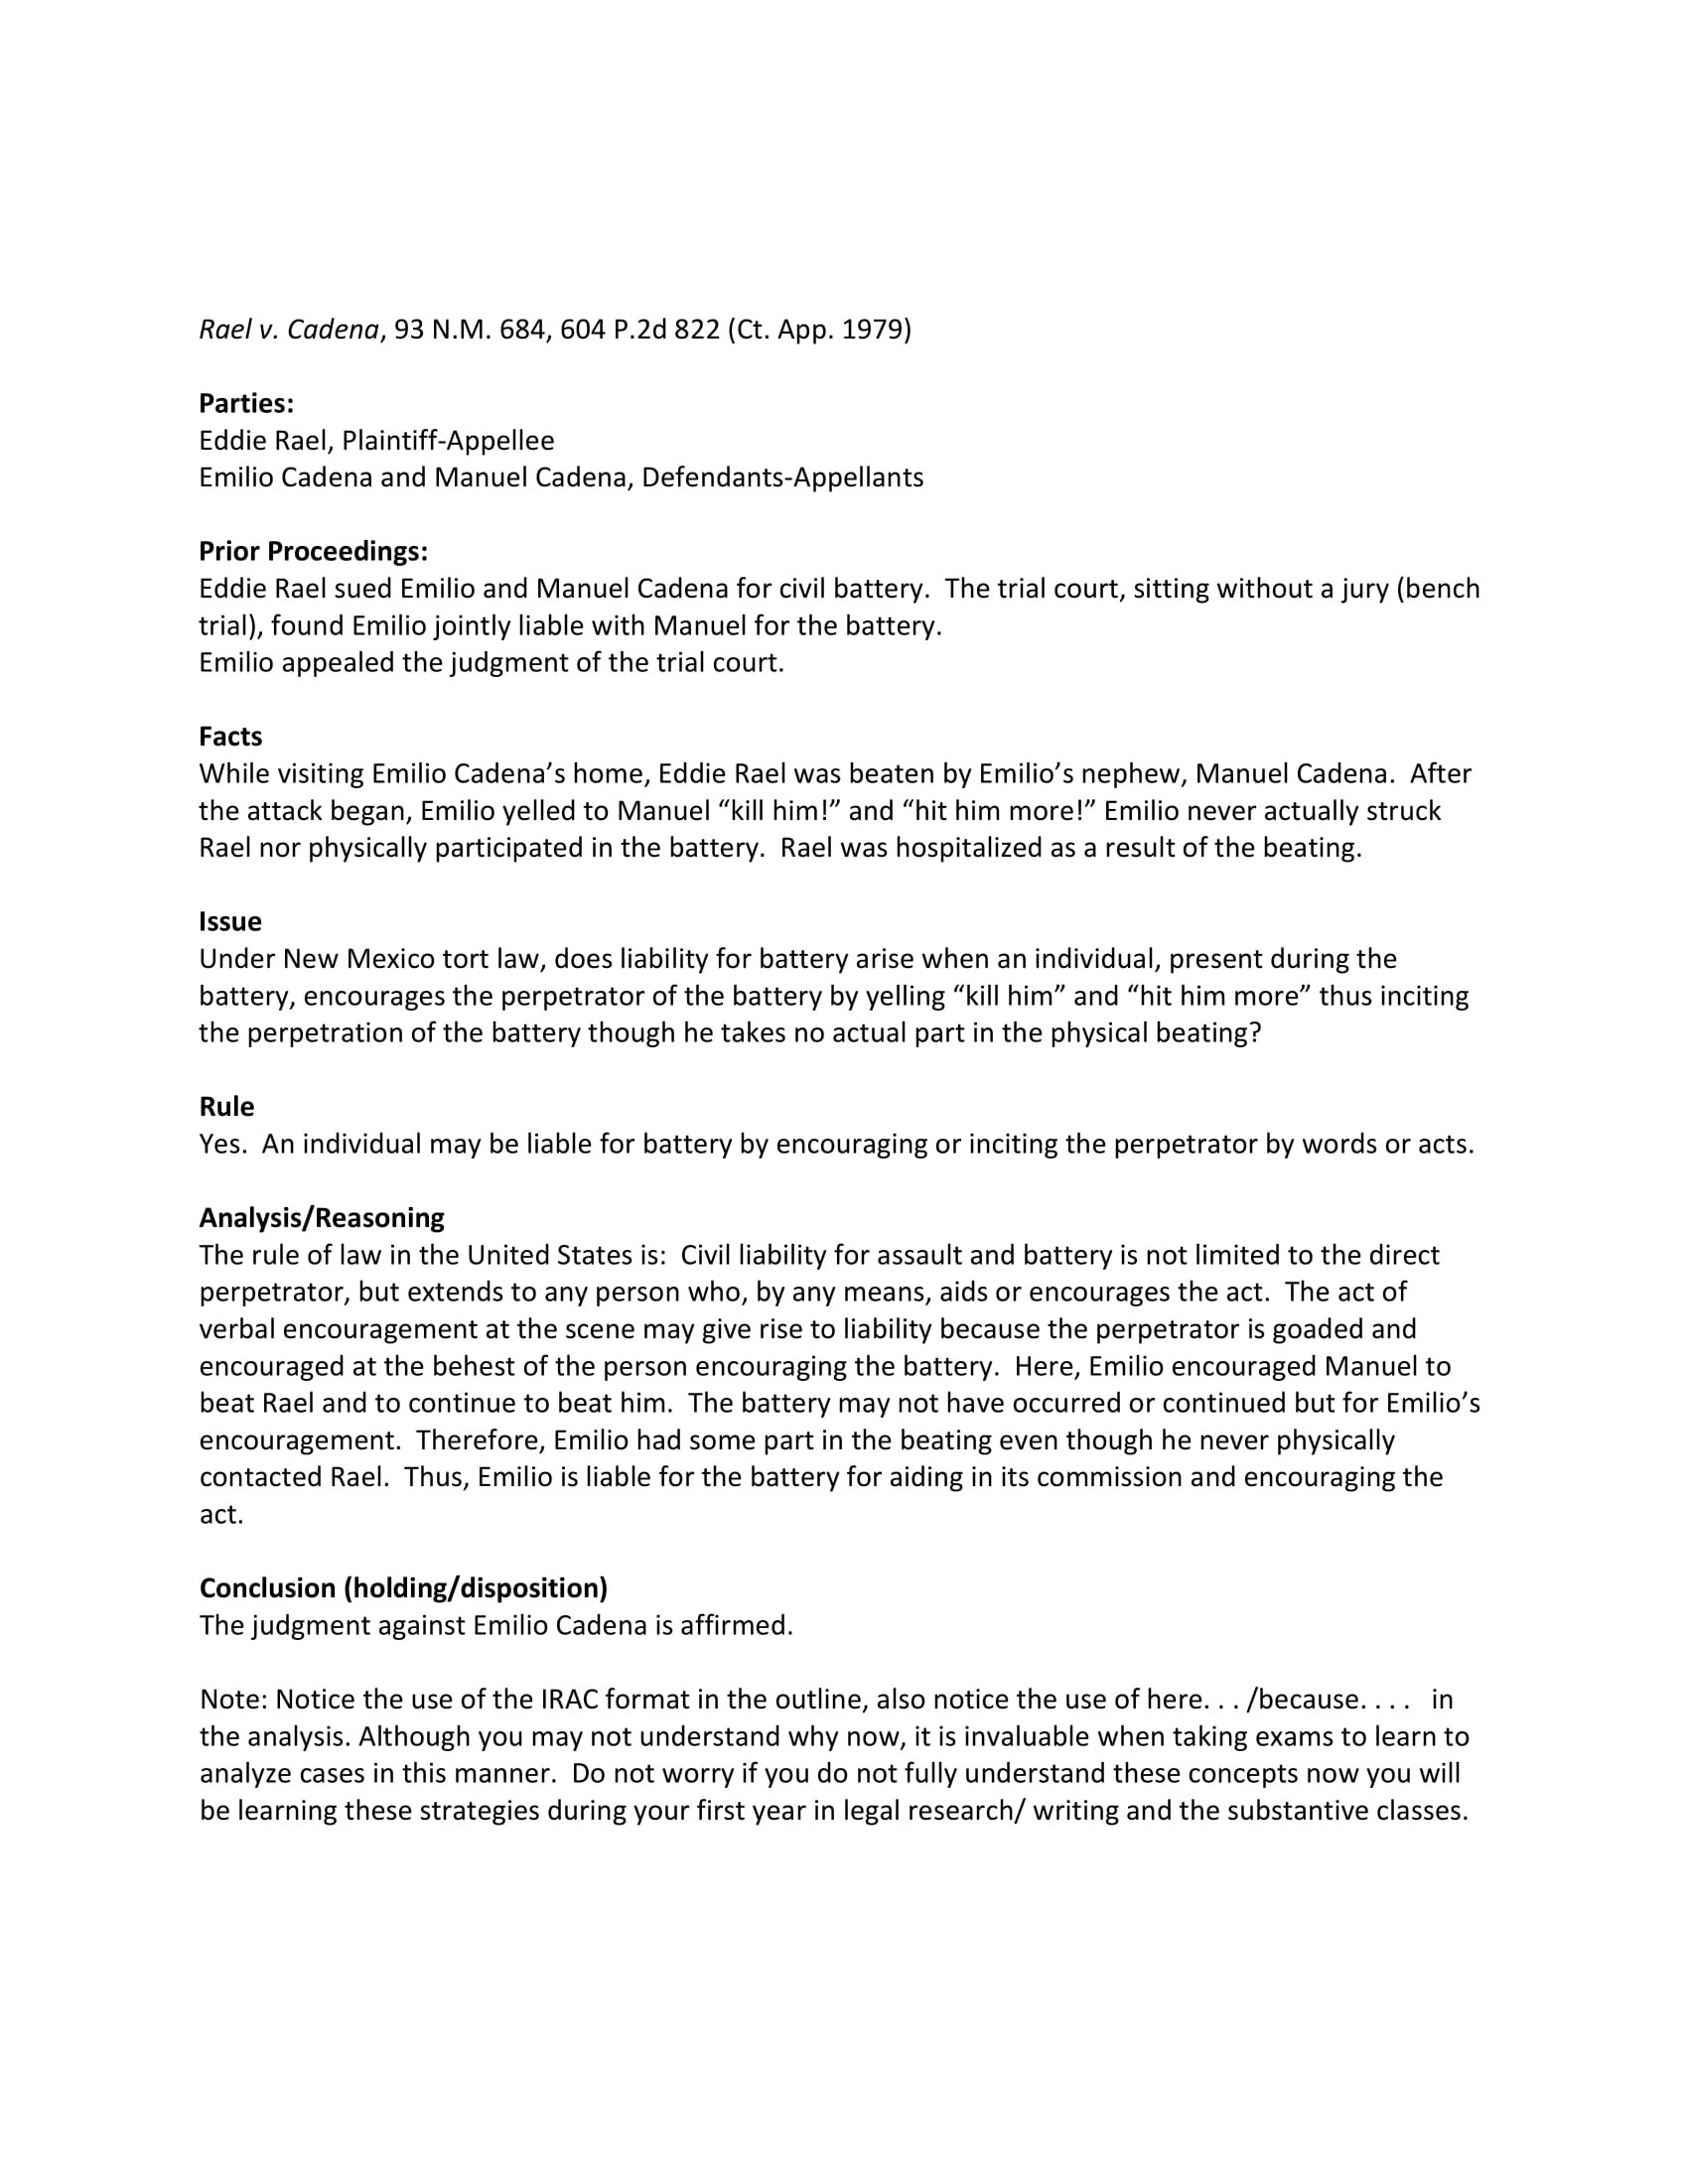 Wisc V Report Template